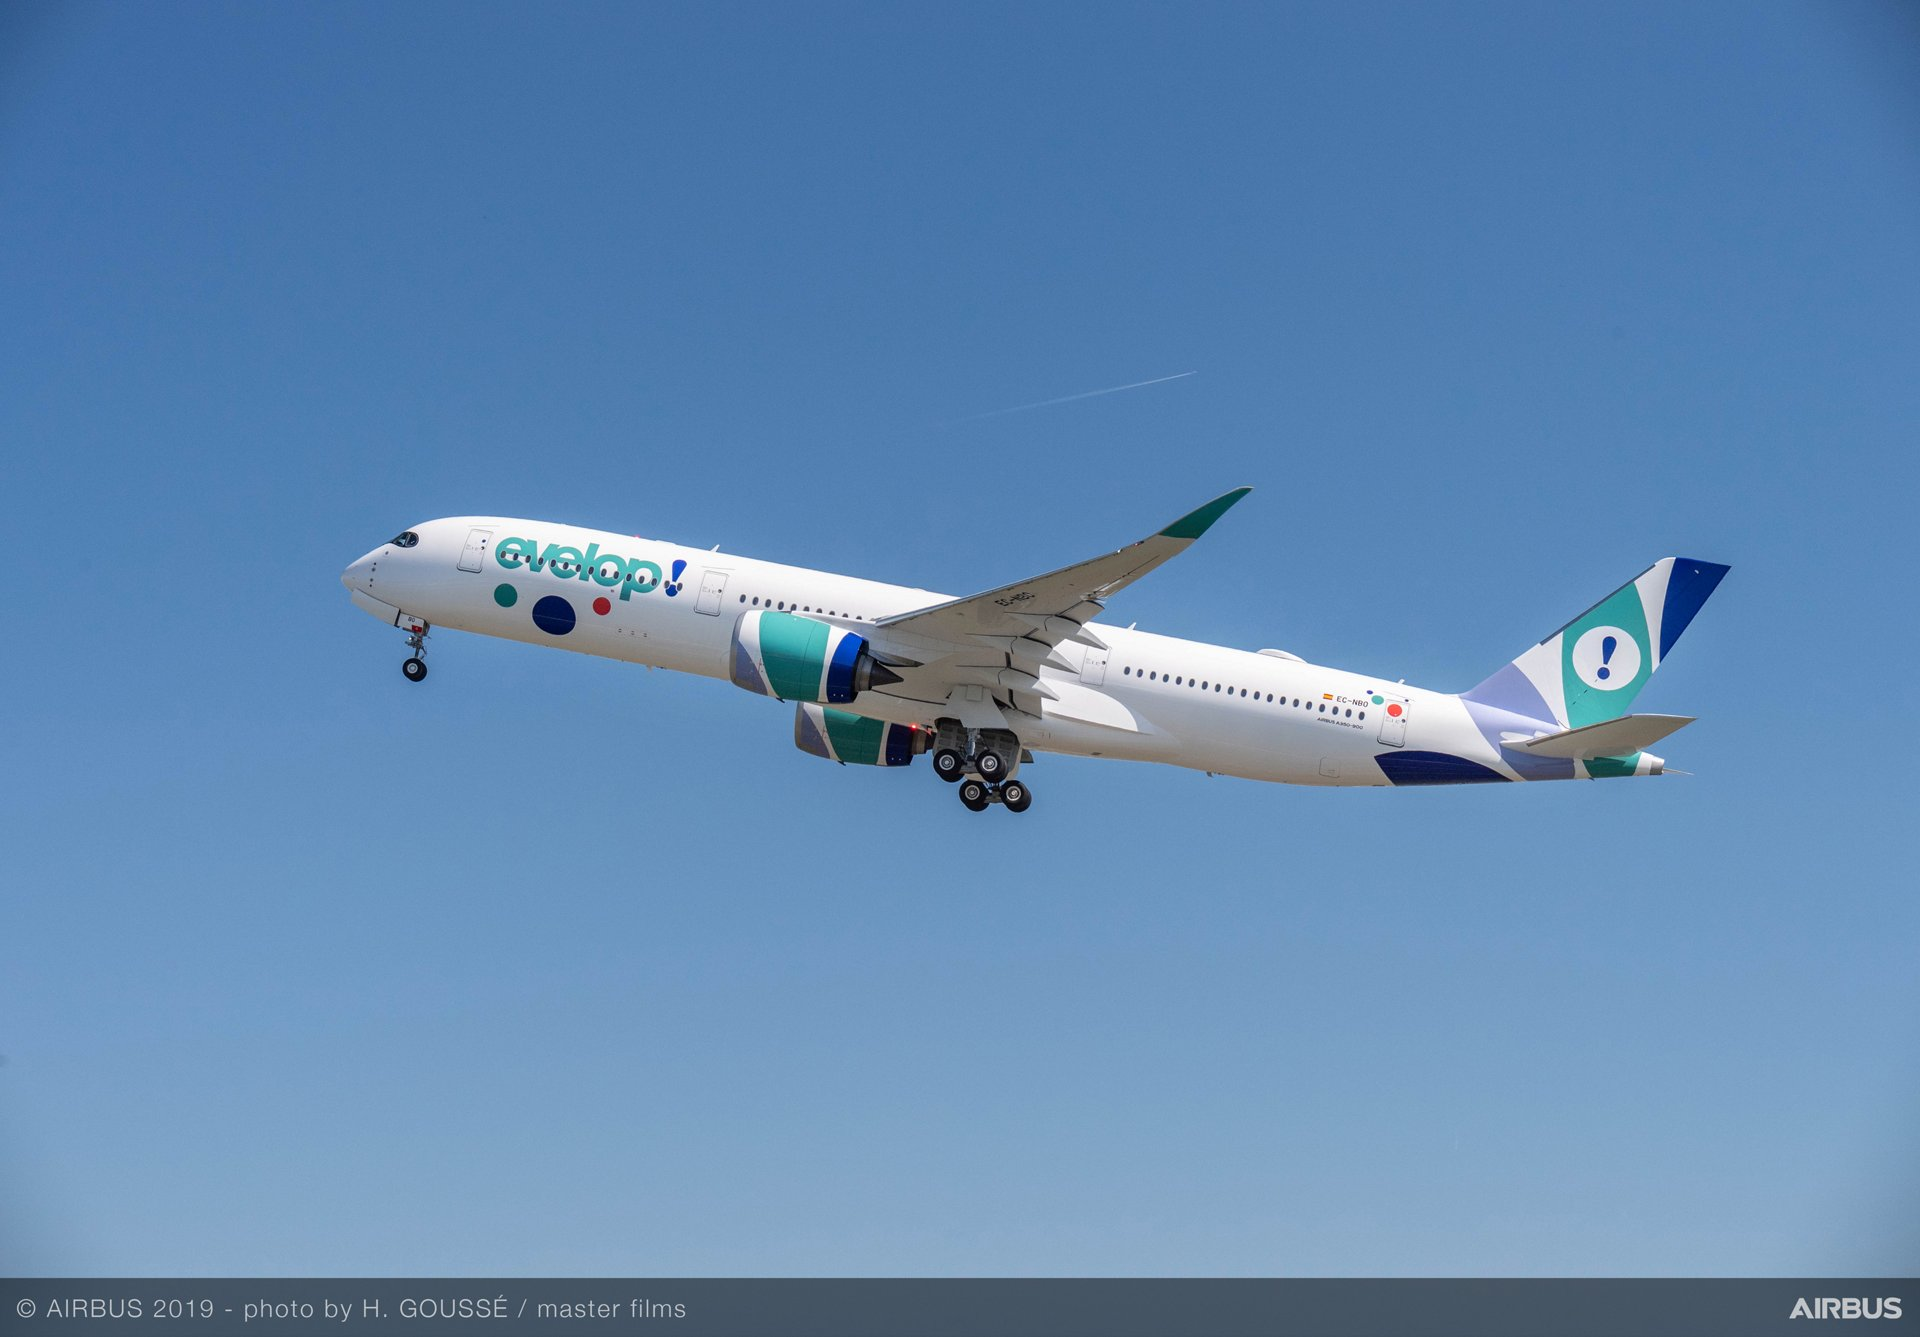 Evelop Airlines is receiving two A350 XWBs in 2019-2020, joining the Spanish carrier's all-Airbus fleet that also includes one A320-200, one A330-200 and three A330-300s